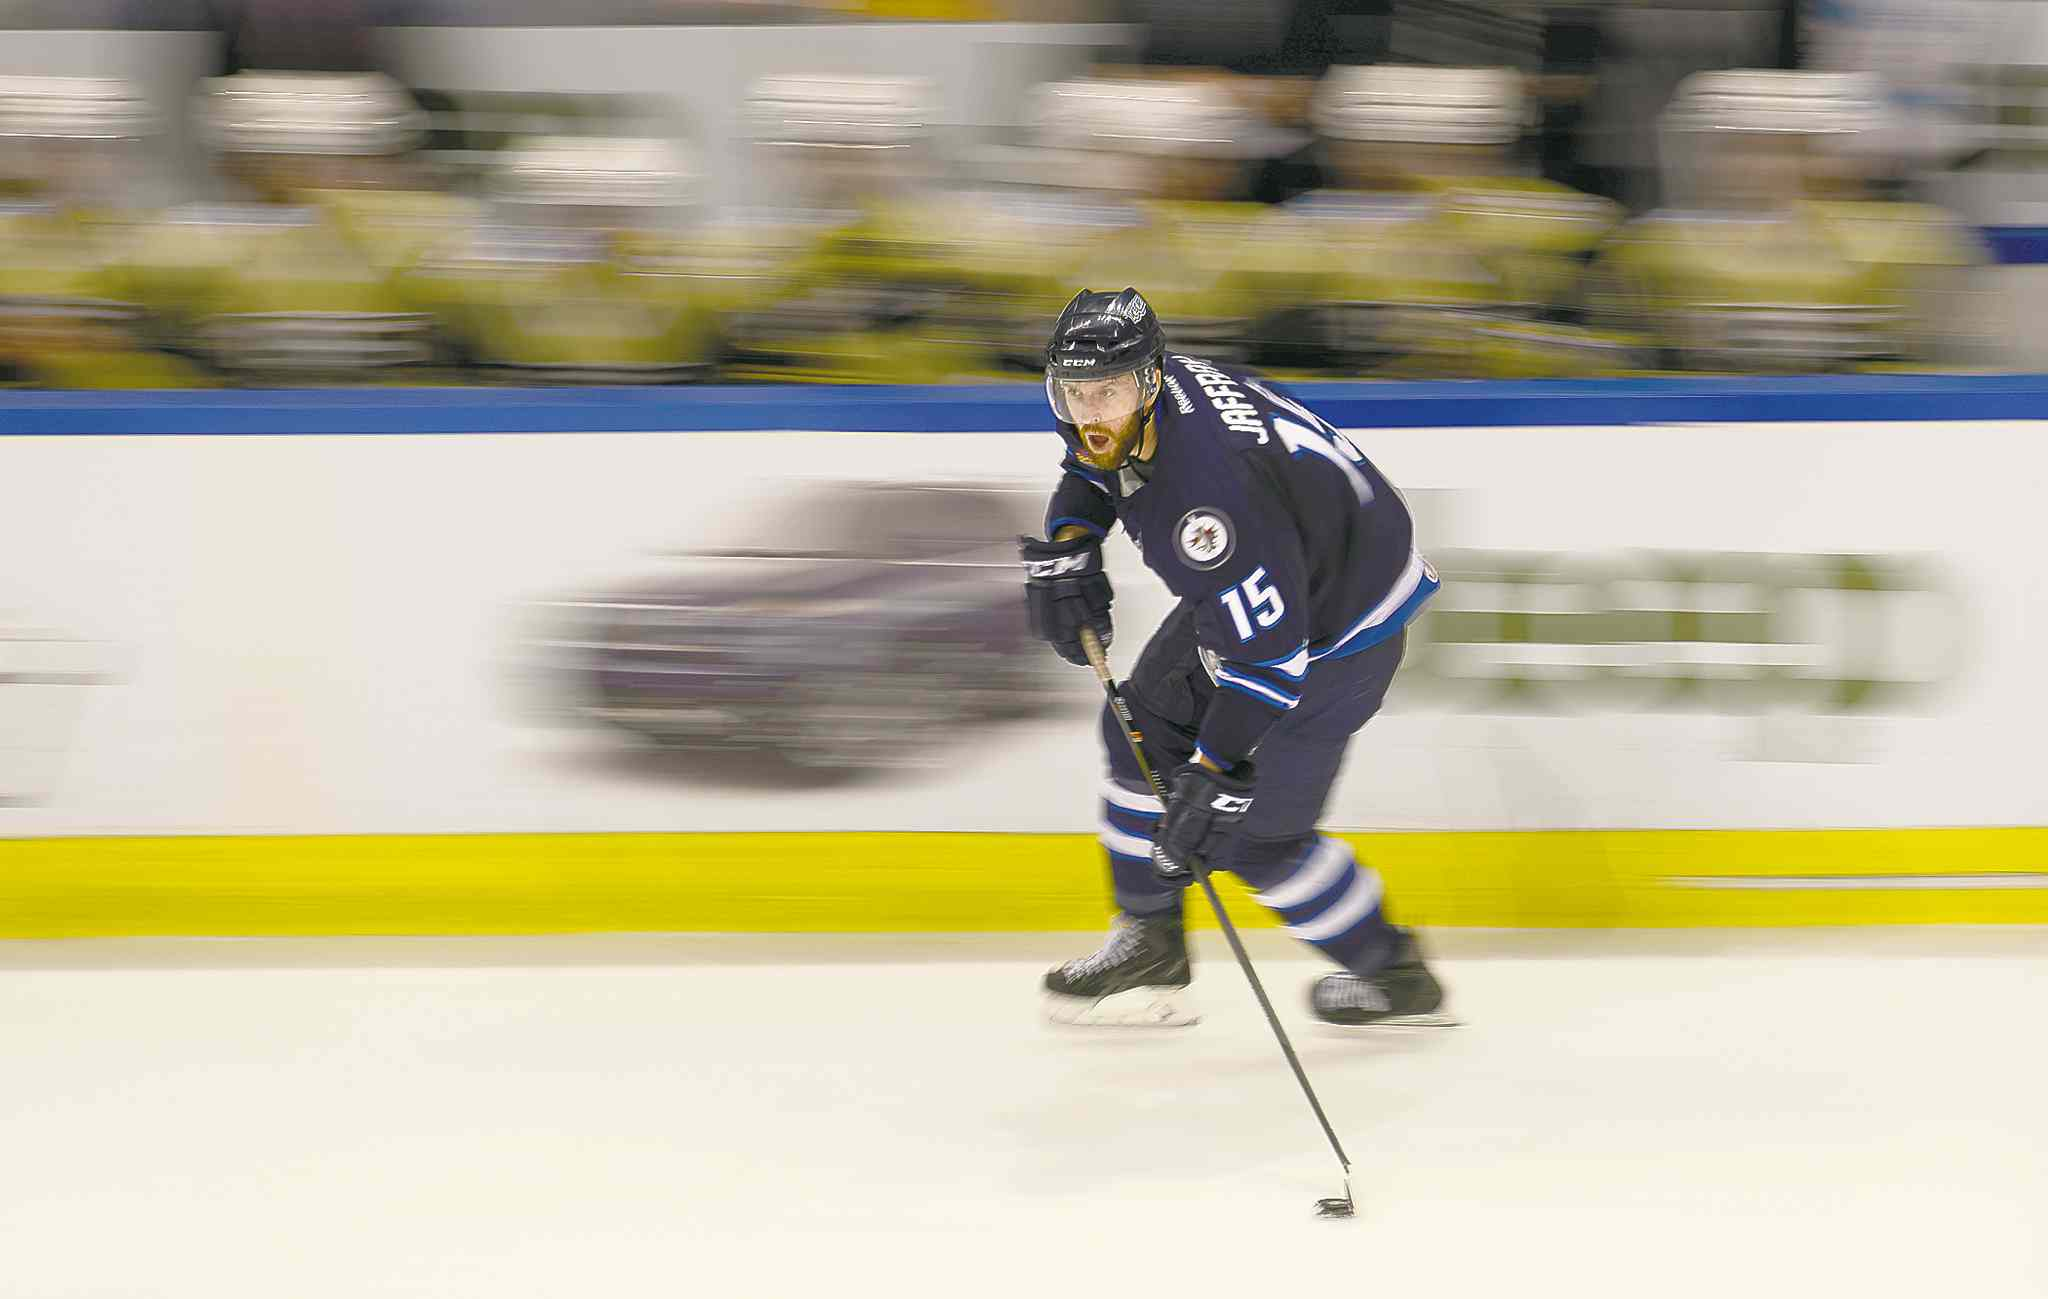 The last month or so has been a blur for IceCaps captain Jason Jaffray, whose team has sped through the AHL playoffs into the Calder Cup final.